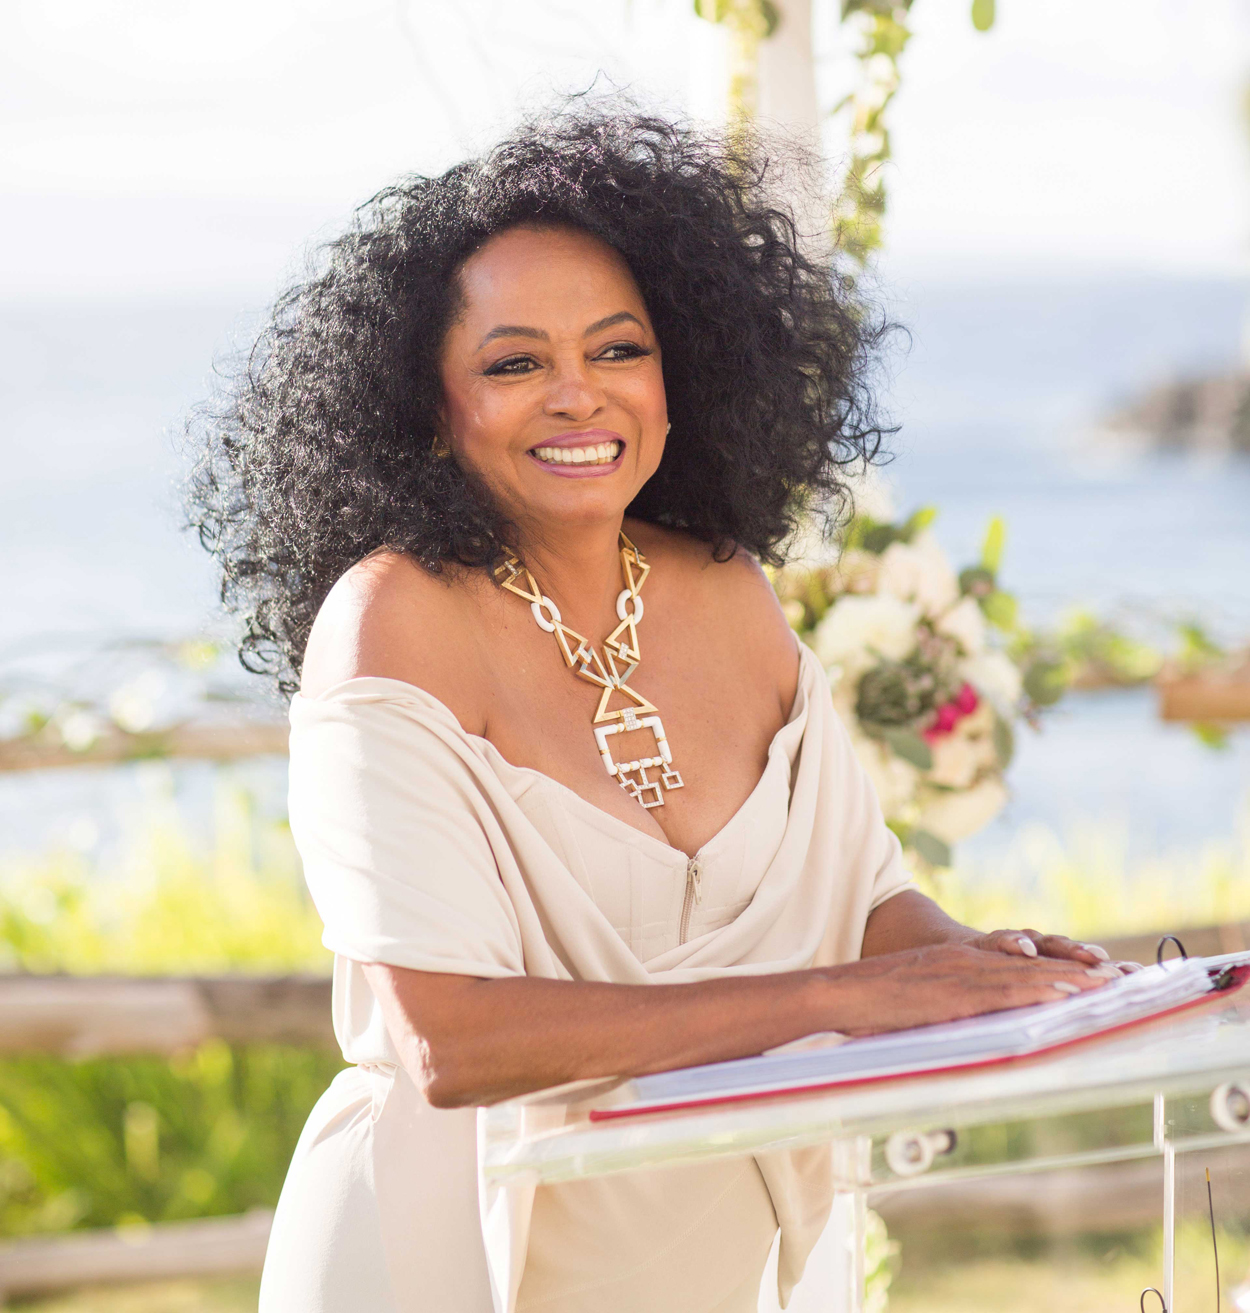 diana ross officiates chudney ross's wedding, celebrities officiated weddings